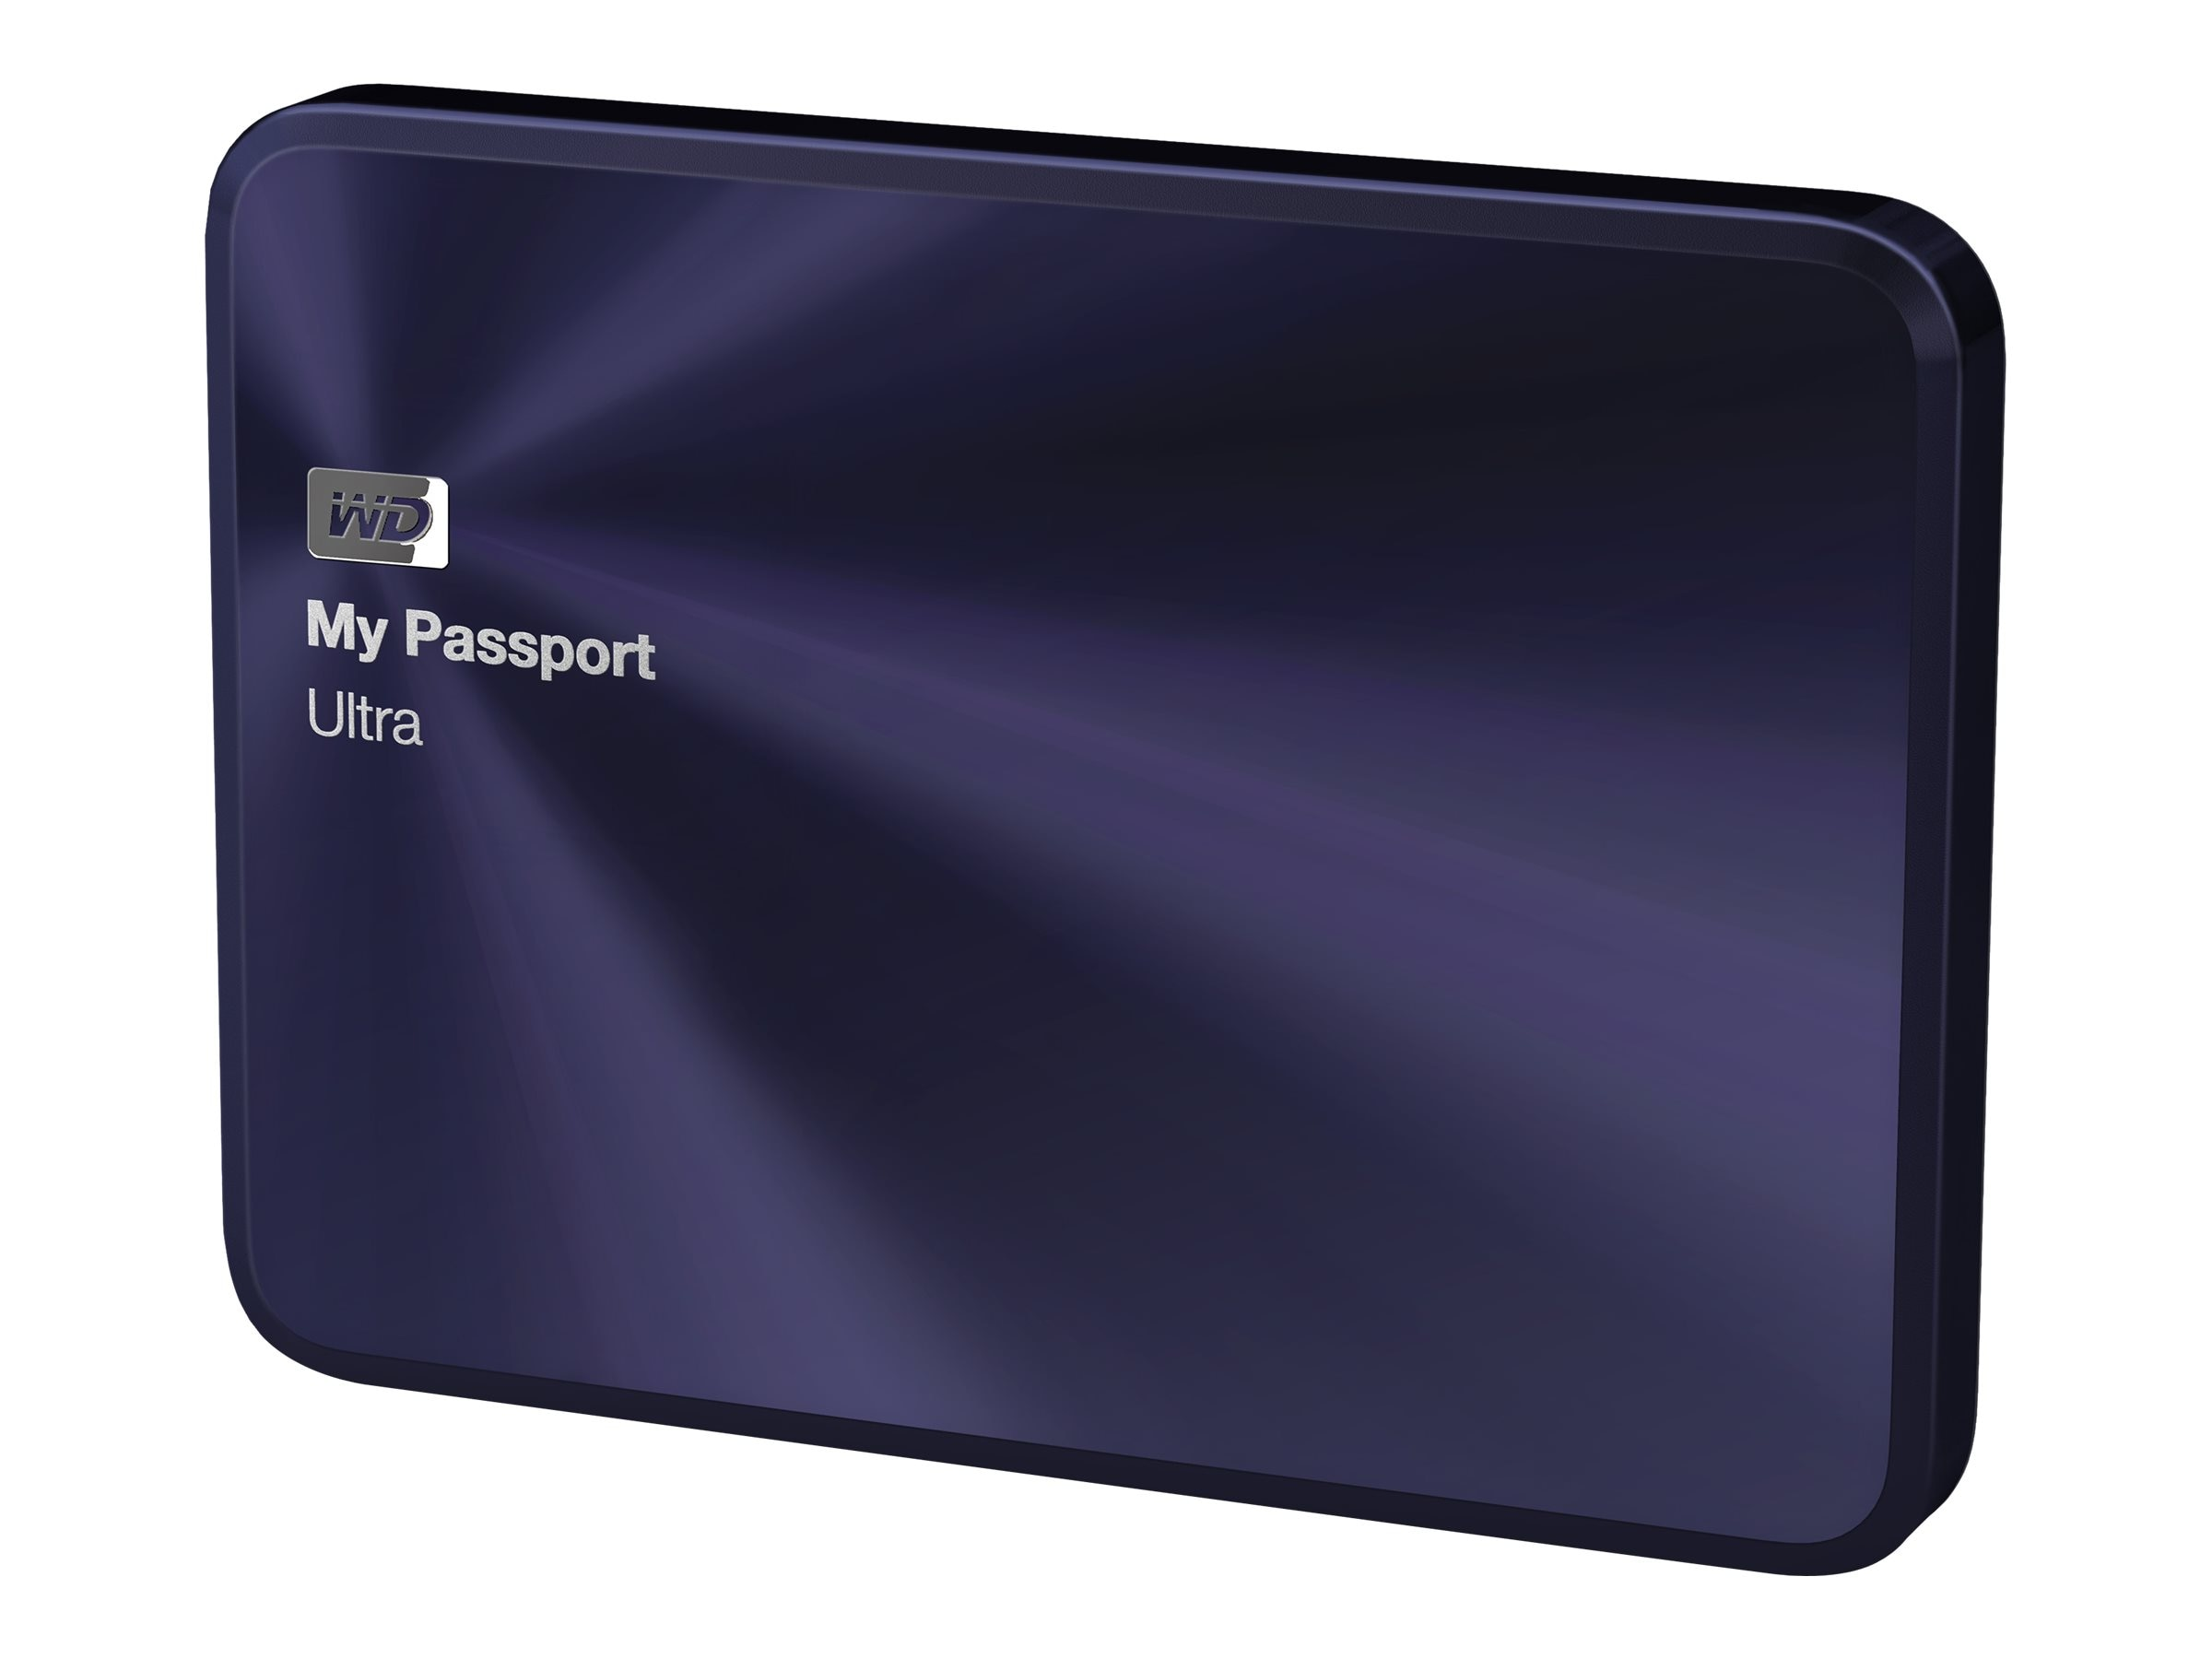 WD 2TB My Passport Ultra Metal Edition USB 3.0 Portable Hard Drive - Blue Black, WDBEZW0020BBA-NESN, 17653438, Hard Drives - External